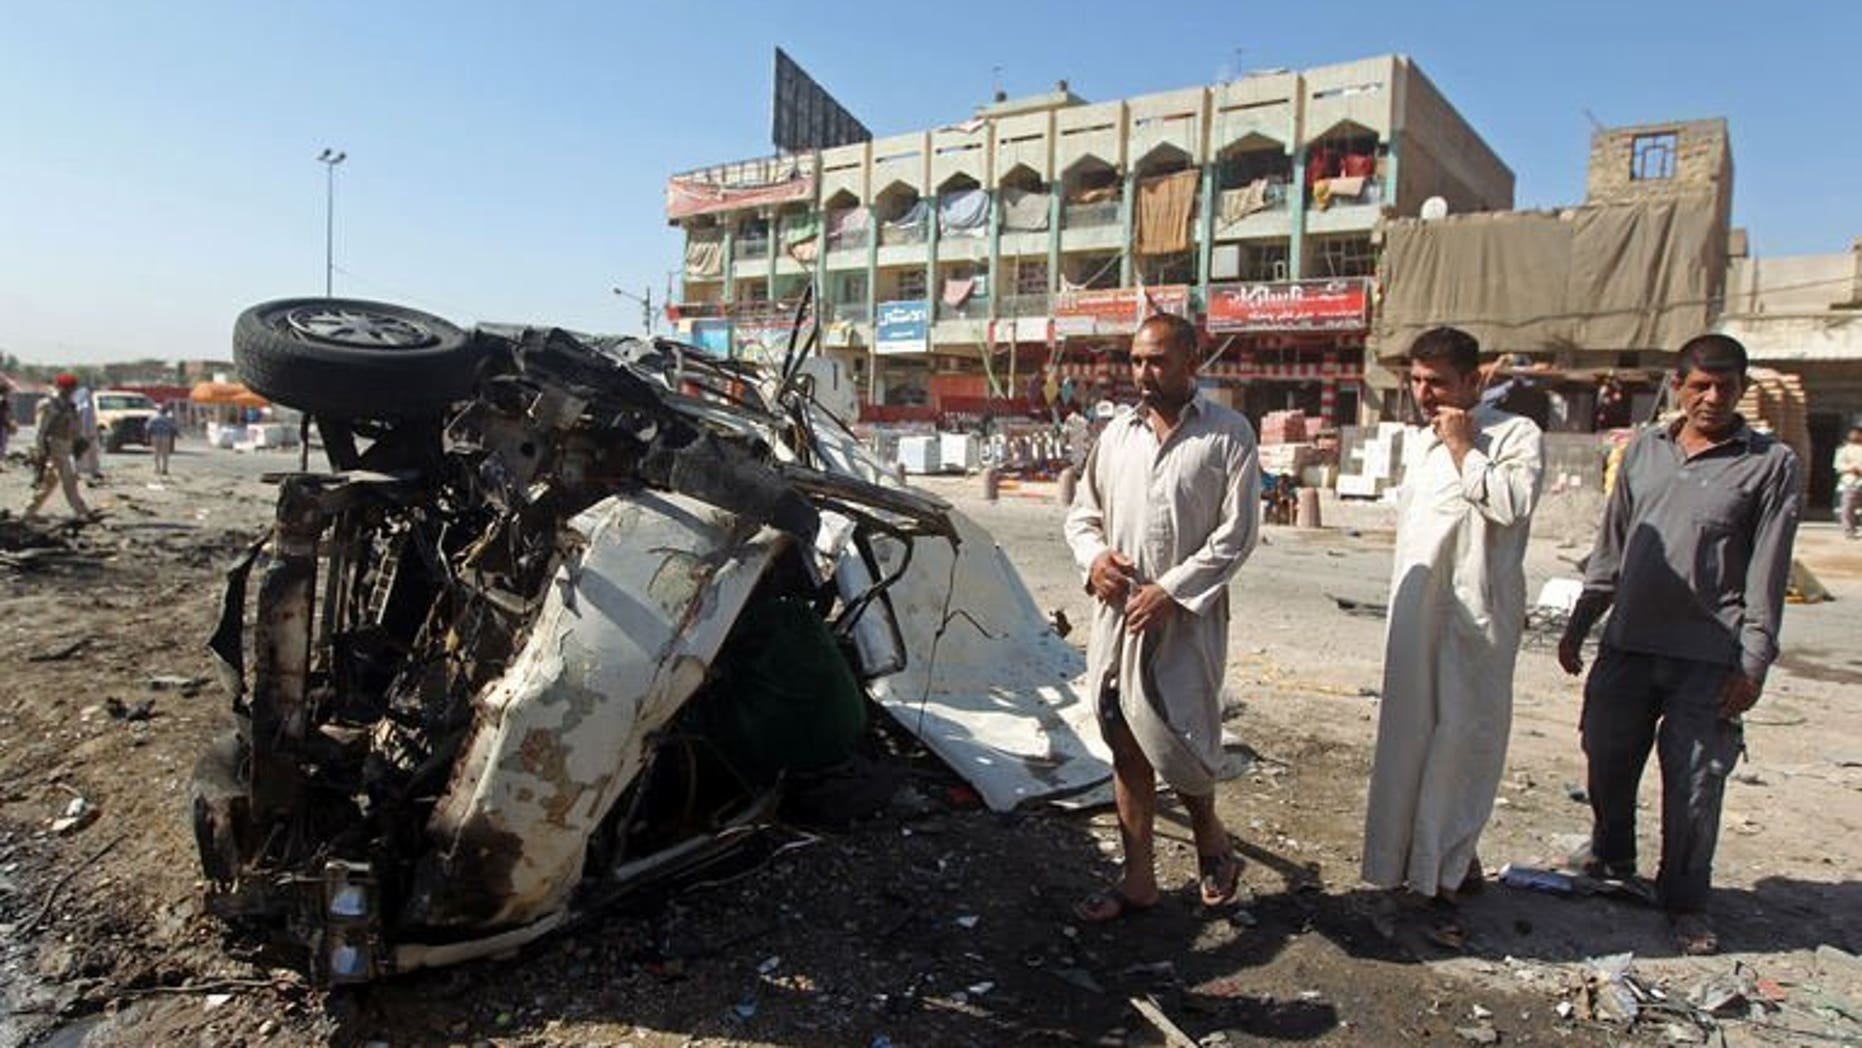 People inspect the site of a car bomb in the impoverished district of Sadr City in the Iraqi capital Baghdad on July 29, 2013. Al-Qaeda front group the Islamic State of Iraq and the Levant on Tuesday claimed the wave of attacks that killed dozens of people the day before.